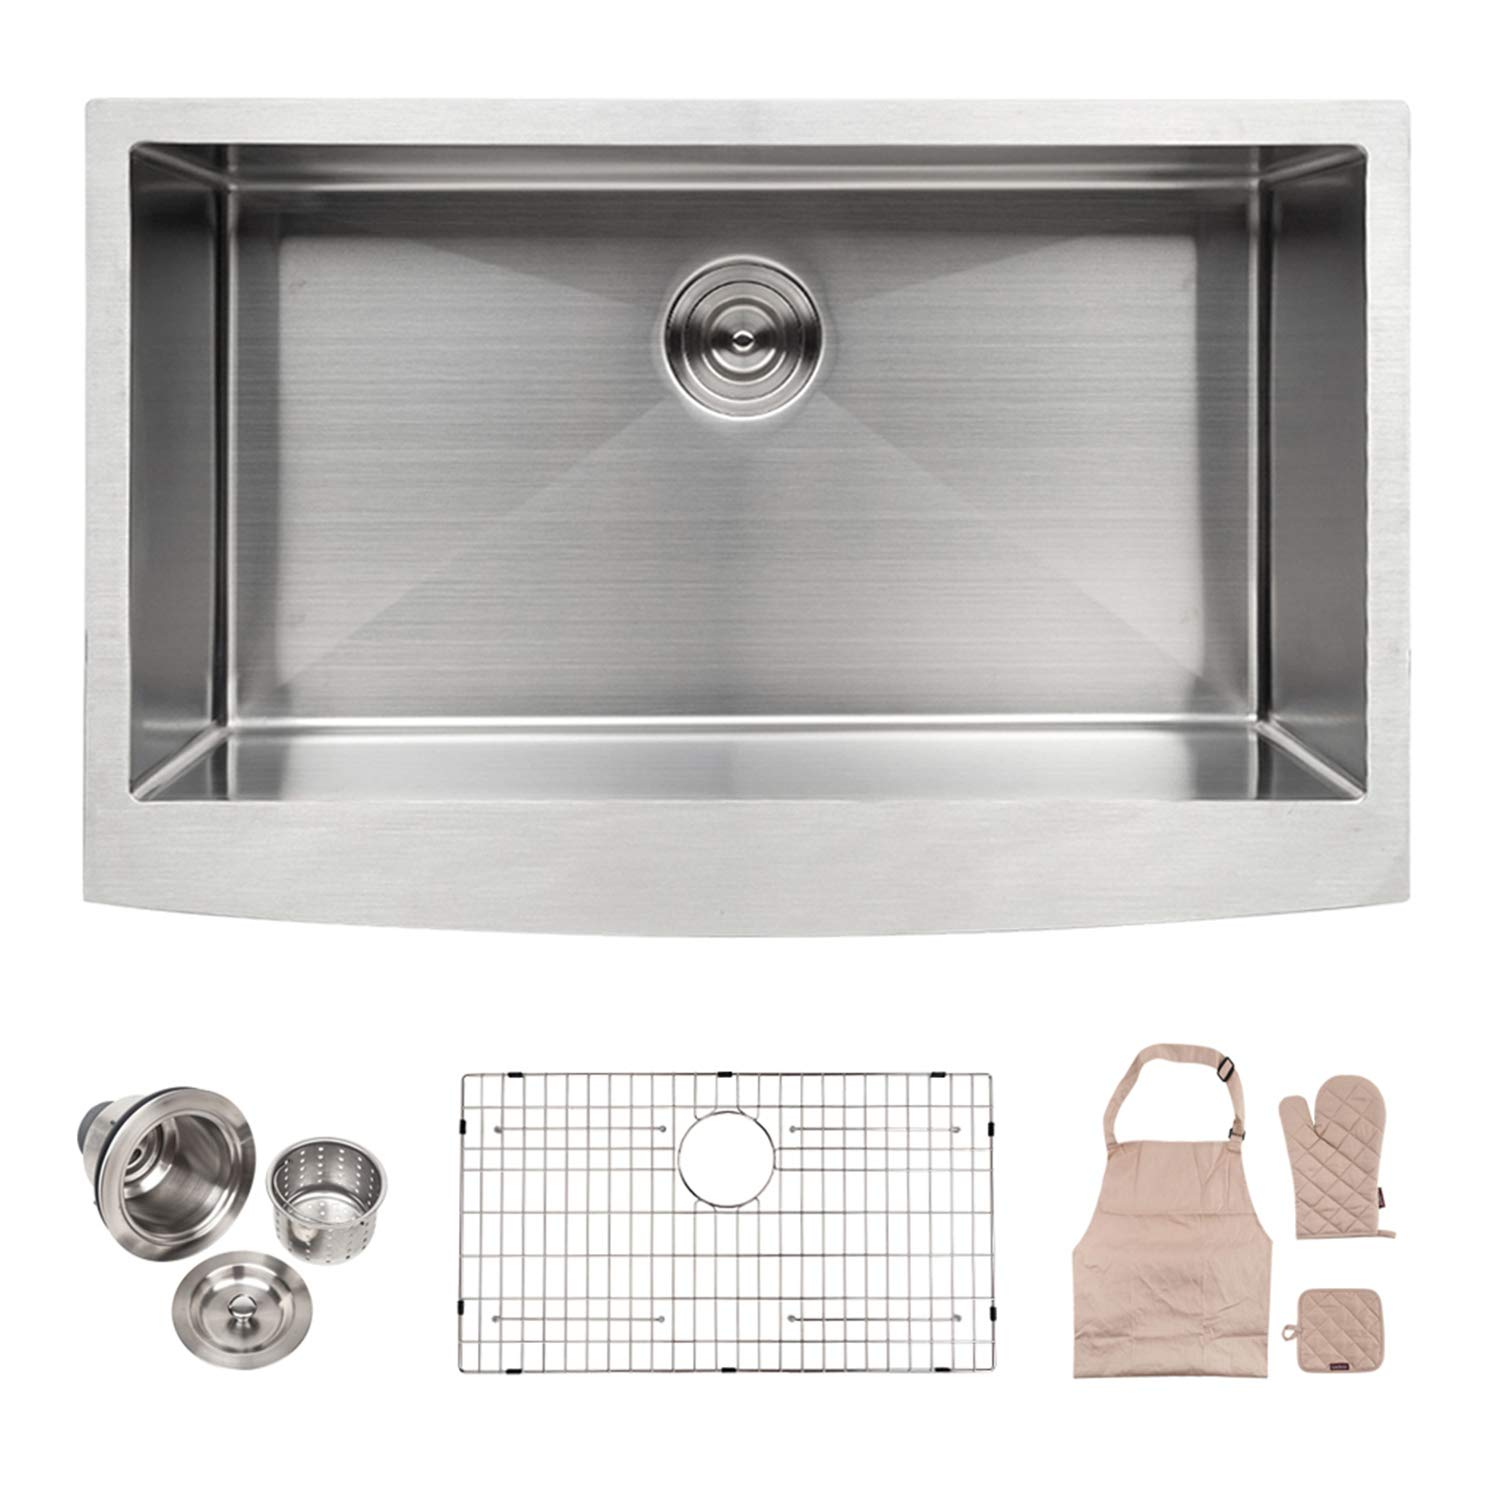 LORDEAR Commercial 36 Inch Farmhouse Apron Single Bowl 16-gauge 10 Inch Deep Stainless Steel Kitchen Sink